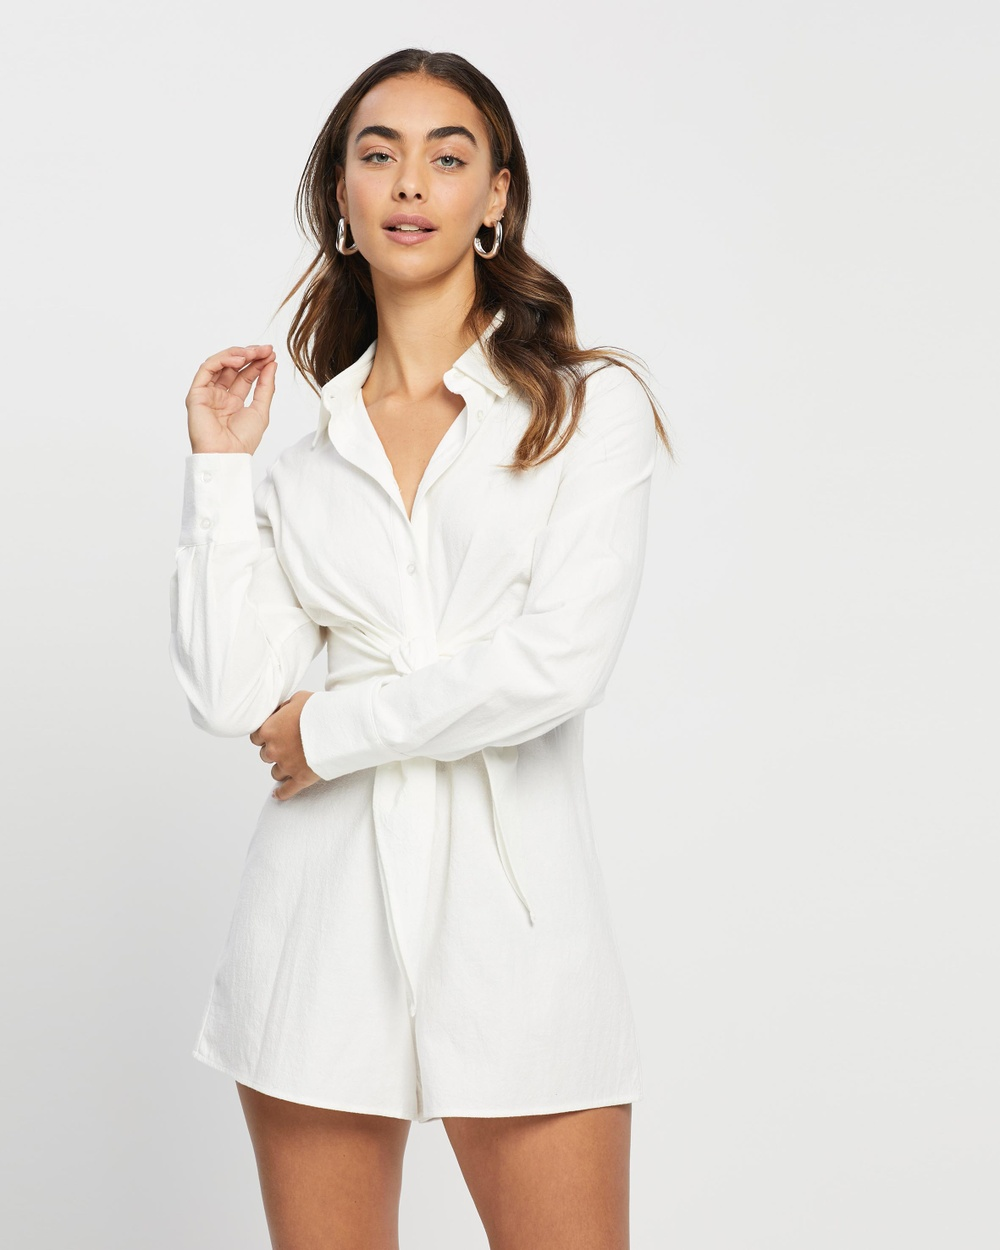 4th & Reckless Bowen Playsuit Jumpsuits Playsuits White